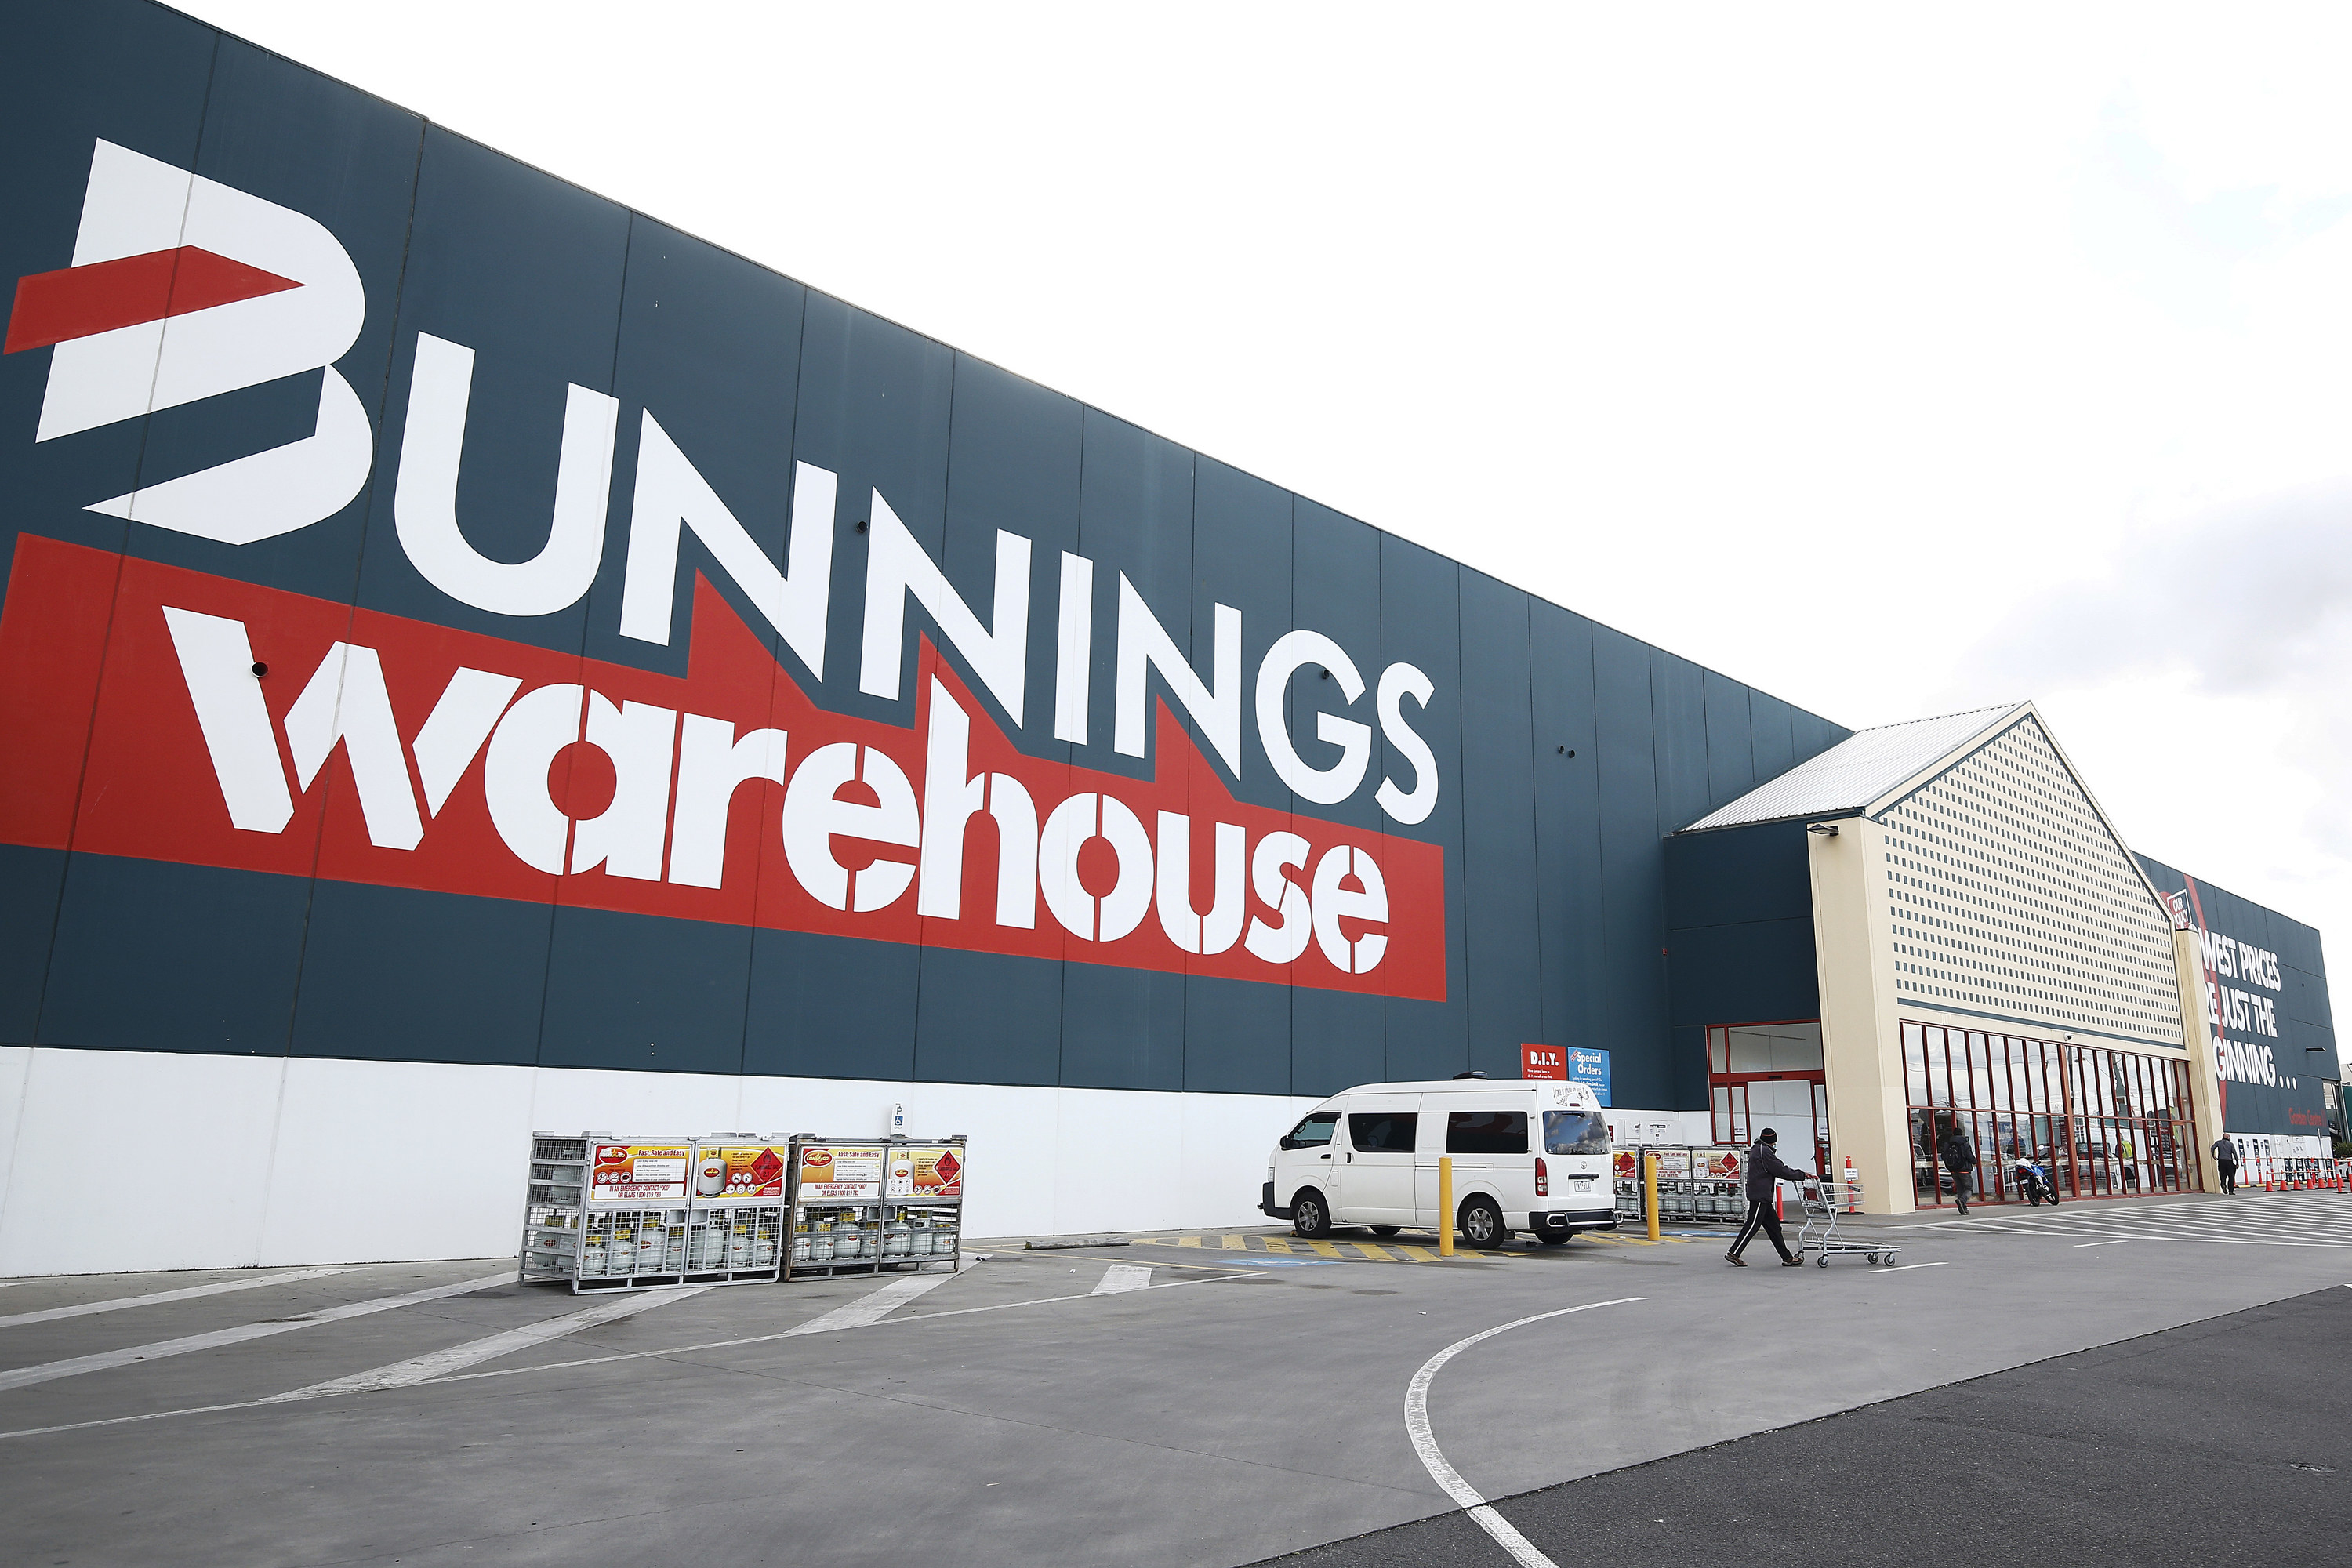 The exterior of a Bunnings Warehouse